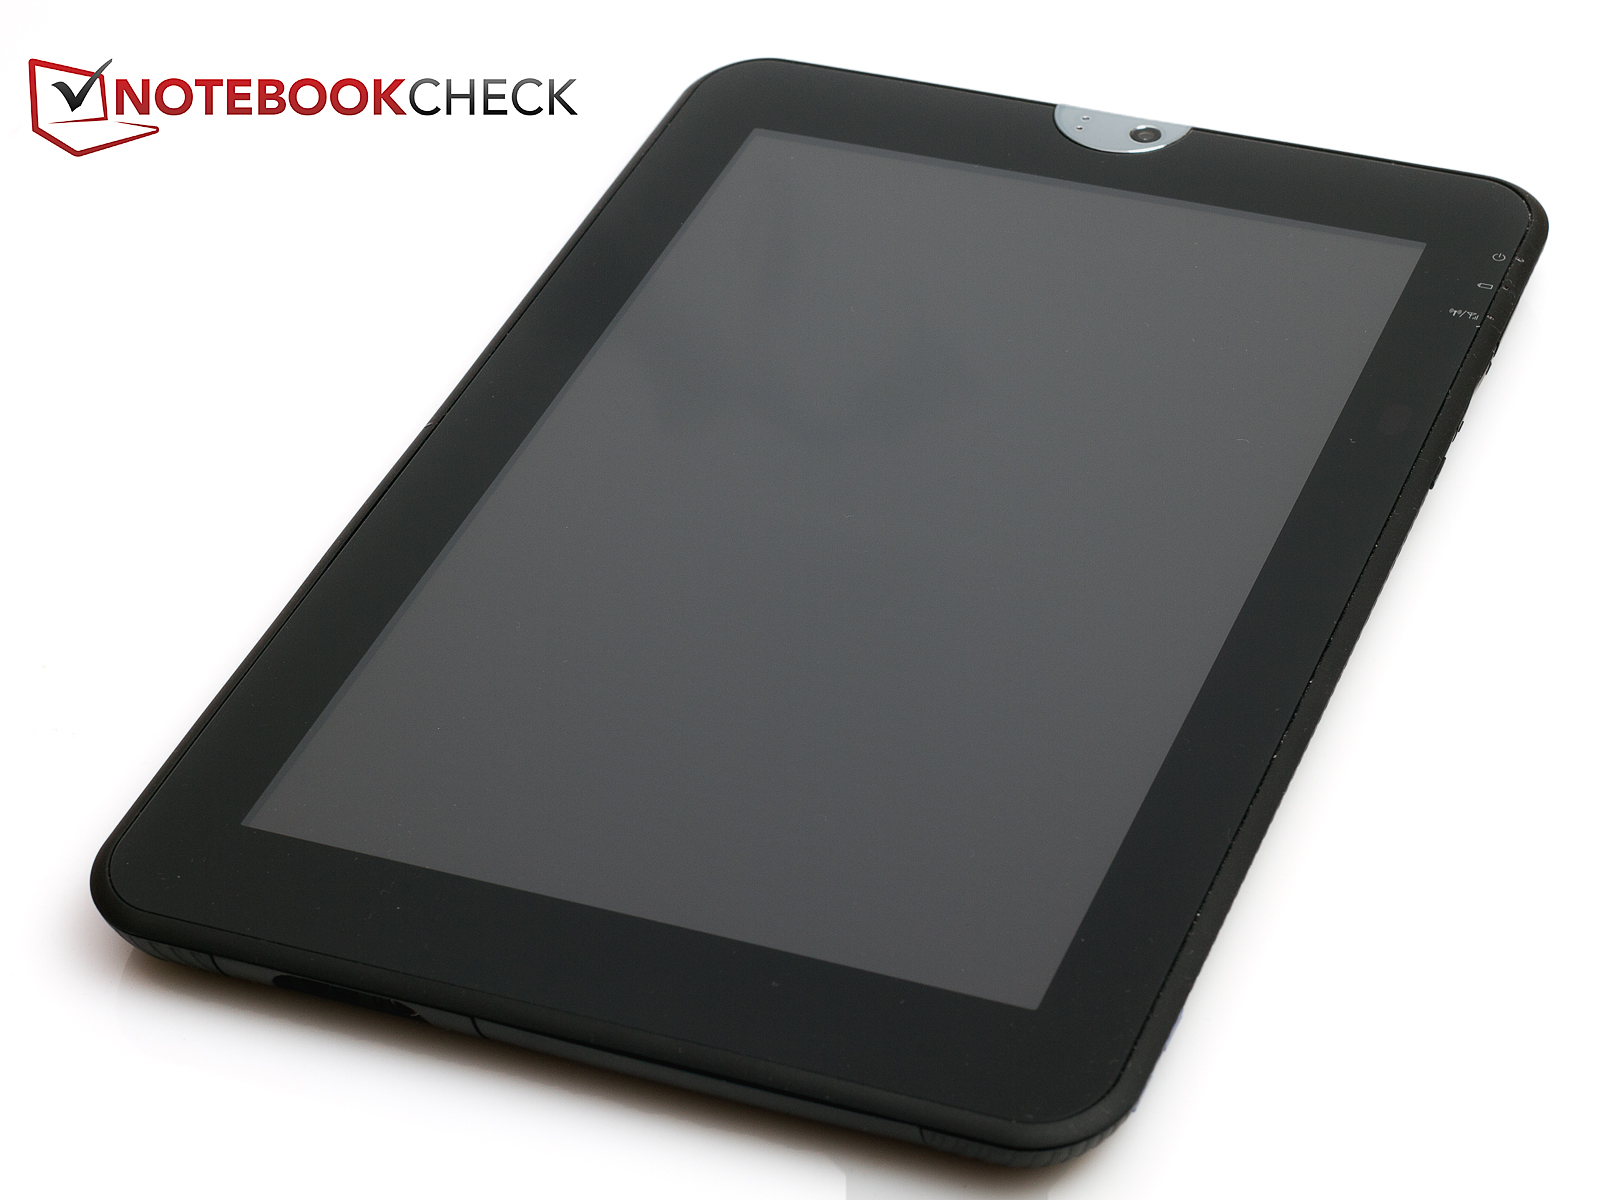 review toshiba at100 100 tablet mid notebookcheck net reviews rh notebookcheck net Toshiba Thrive Parts List Toshiba Thrive Jelly Bean Update